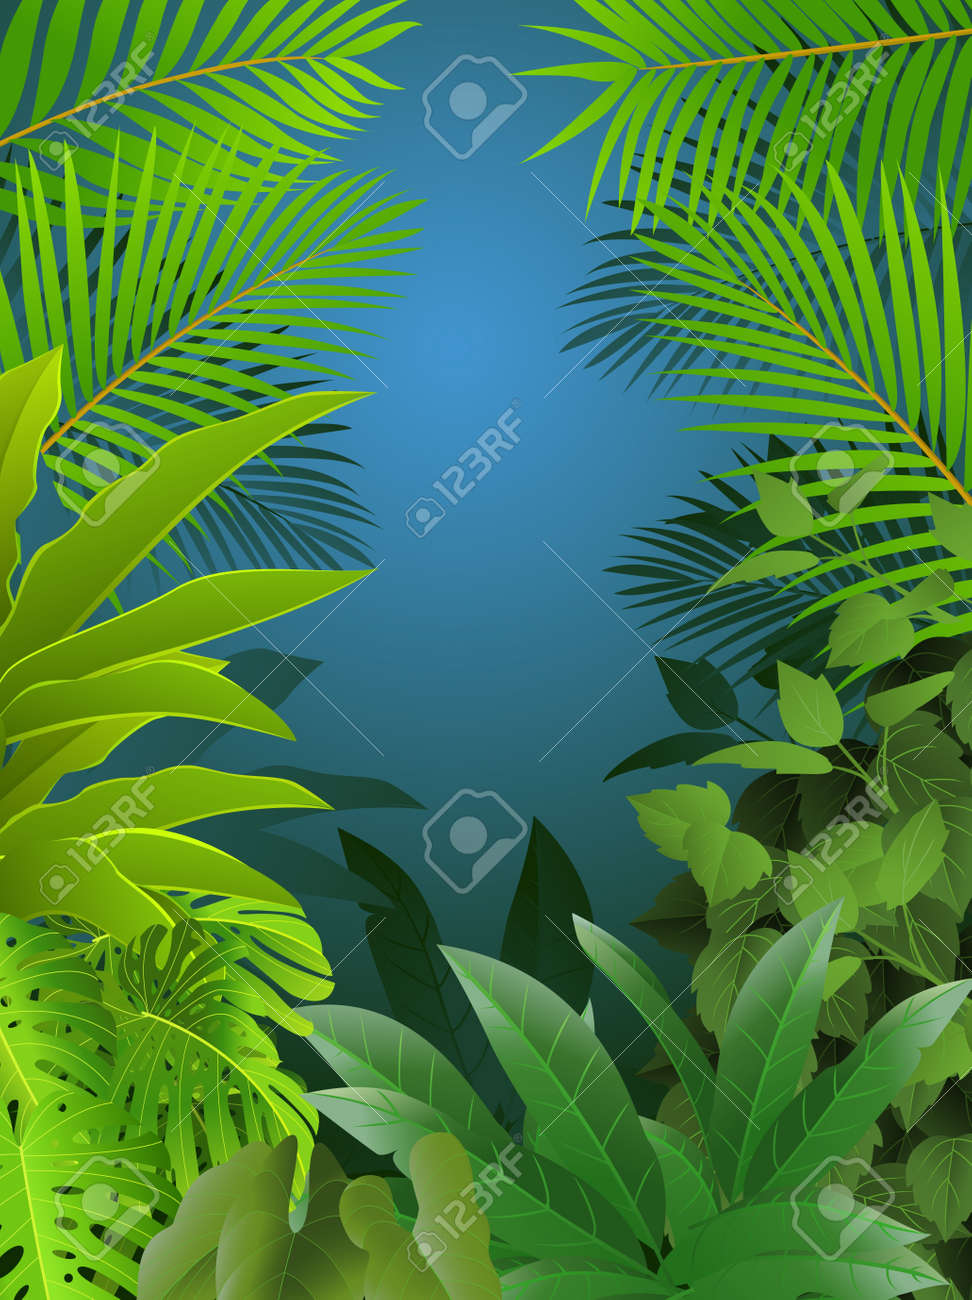 Tropical forest background - 13781442